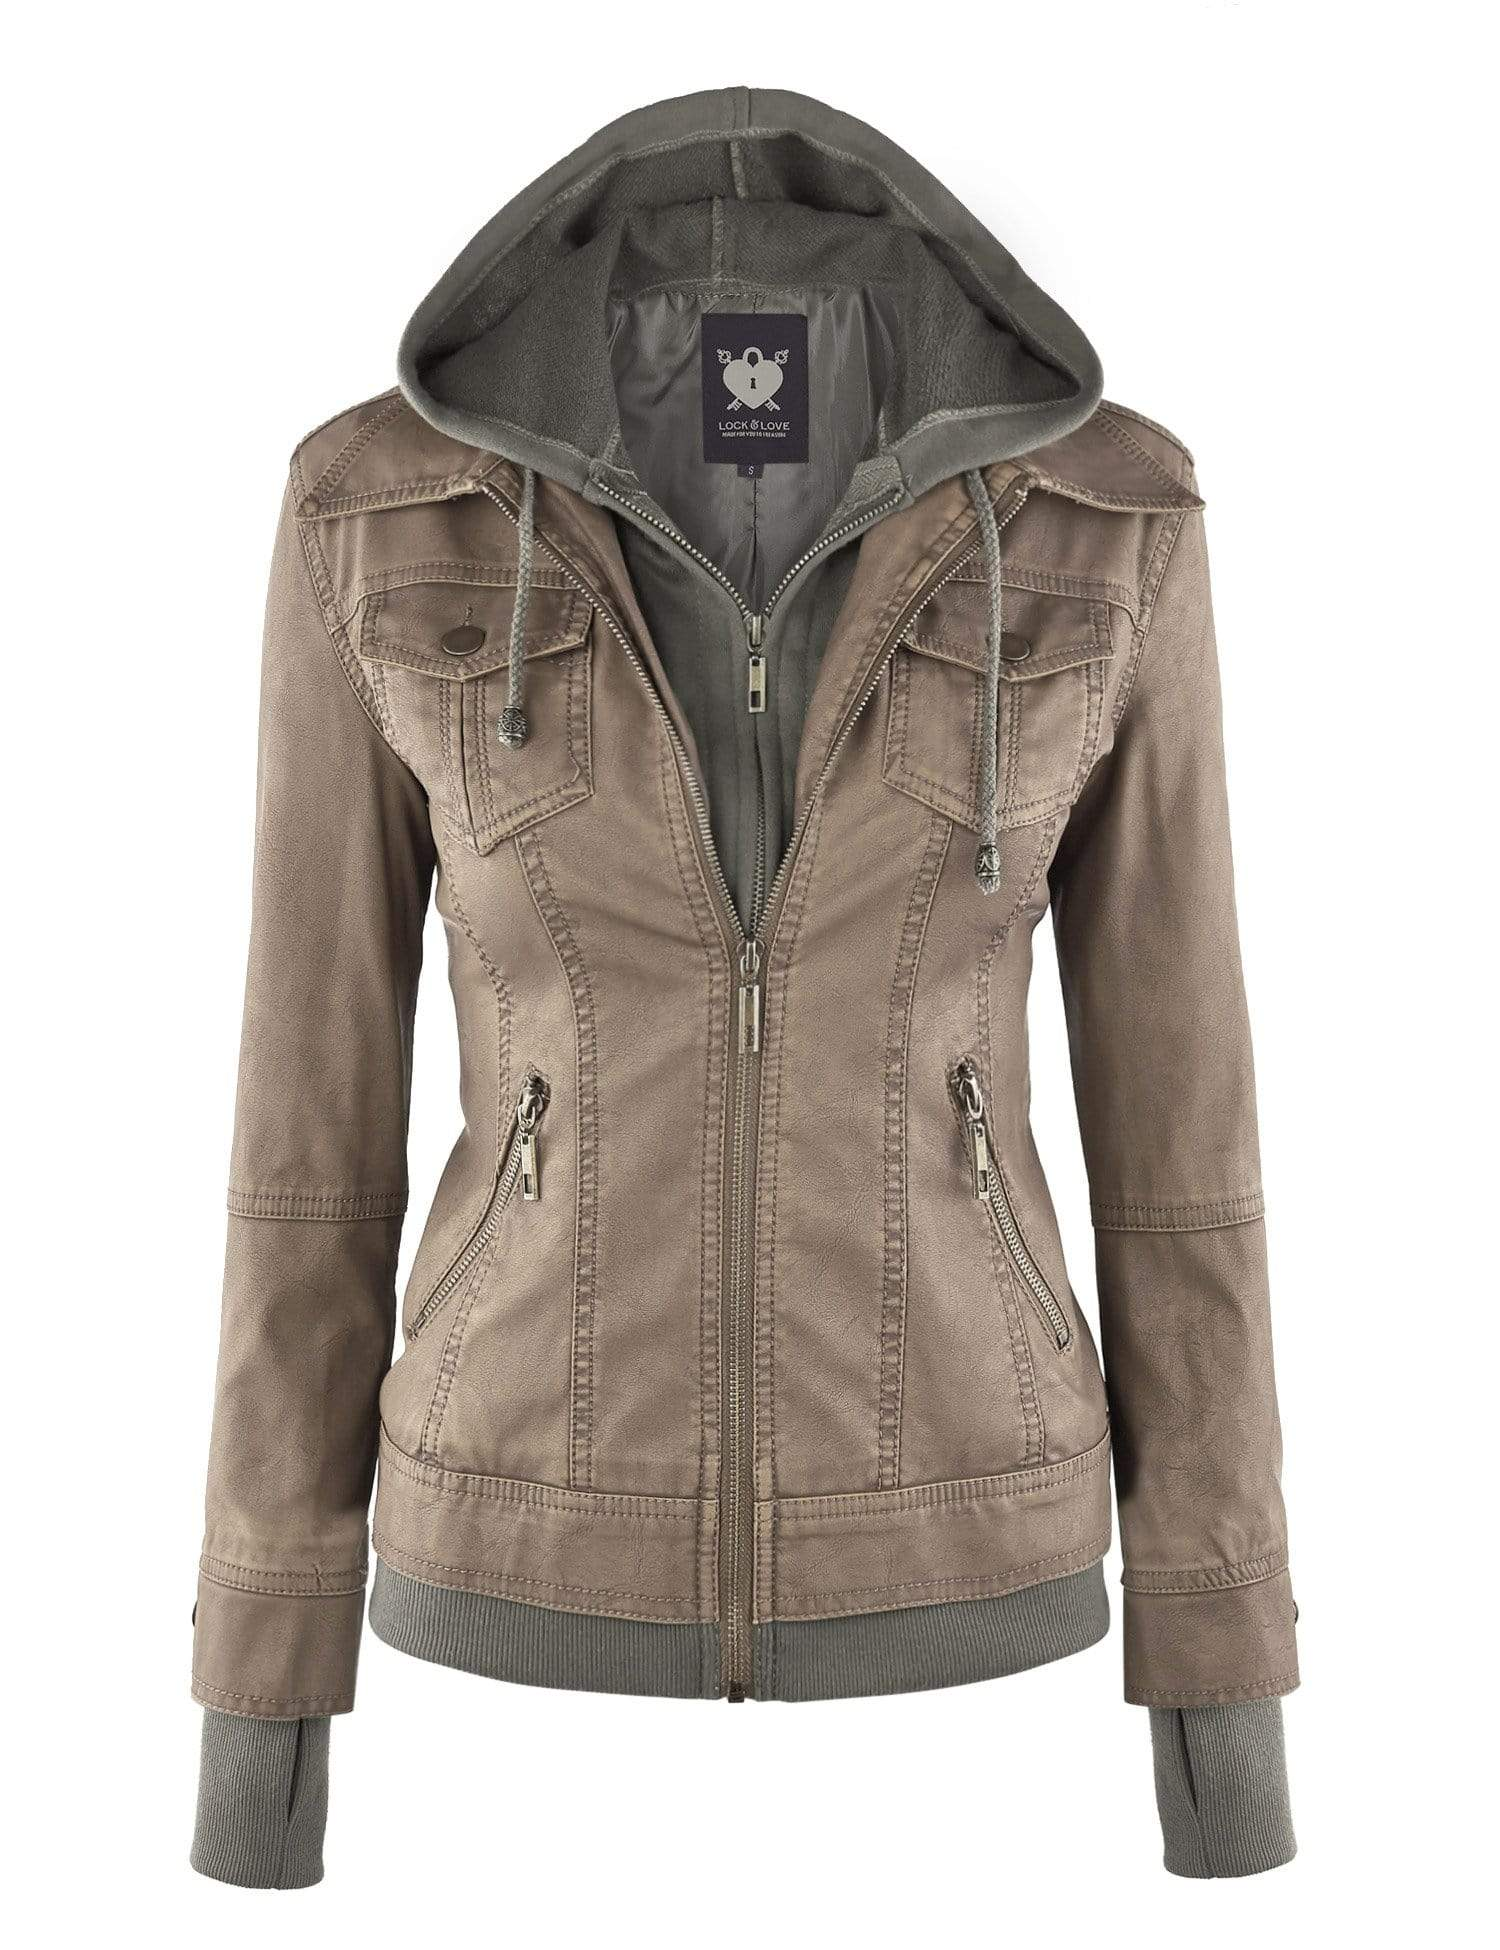 DAILYHAUTE Women's jacket KHAKI / XS Made By Johnny MBJ Womens Faux Leather Motorcycle Jacket with Hoodie